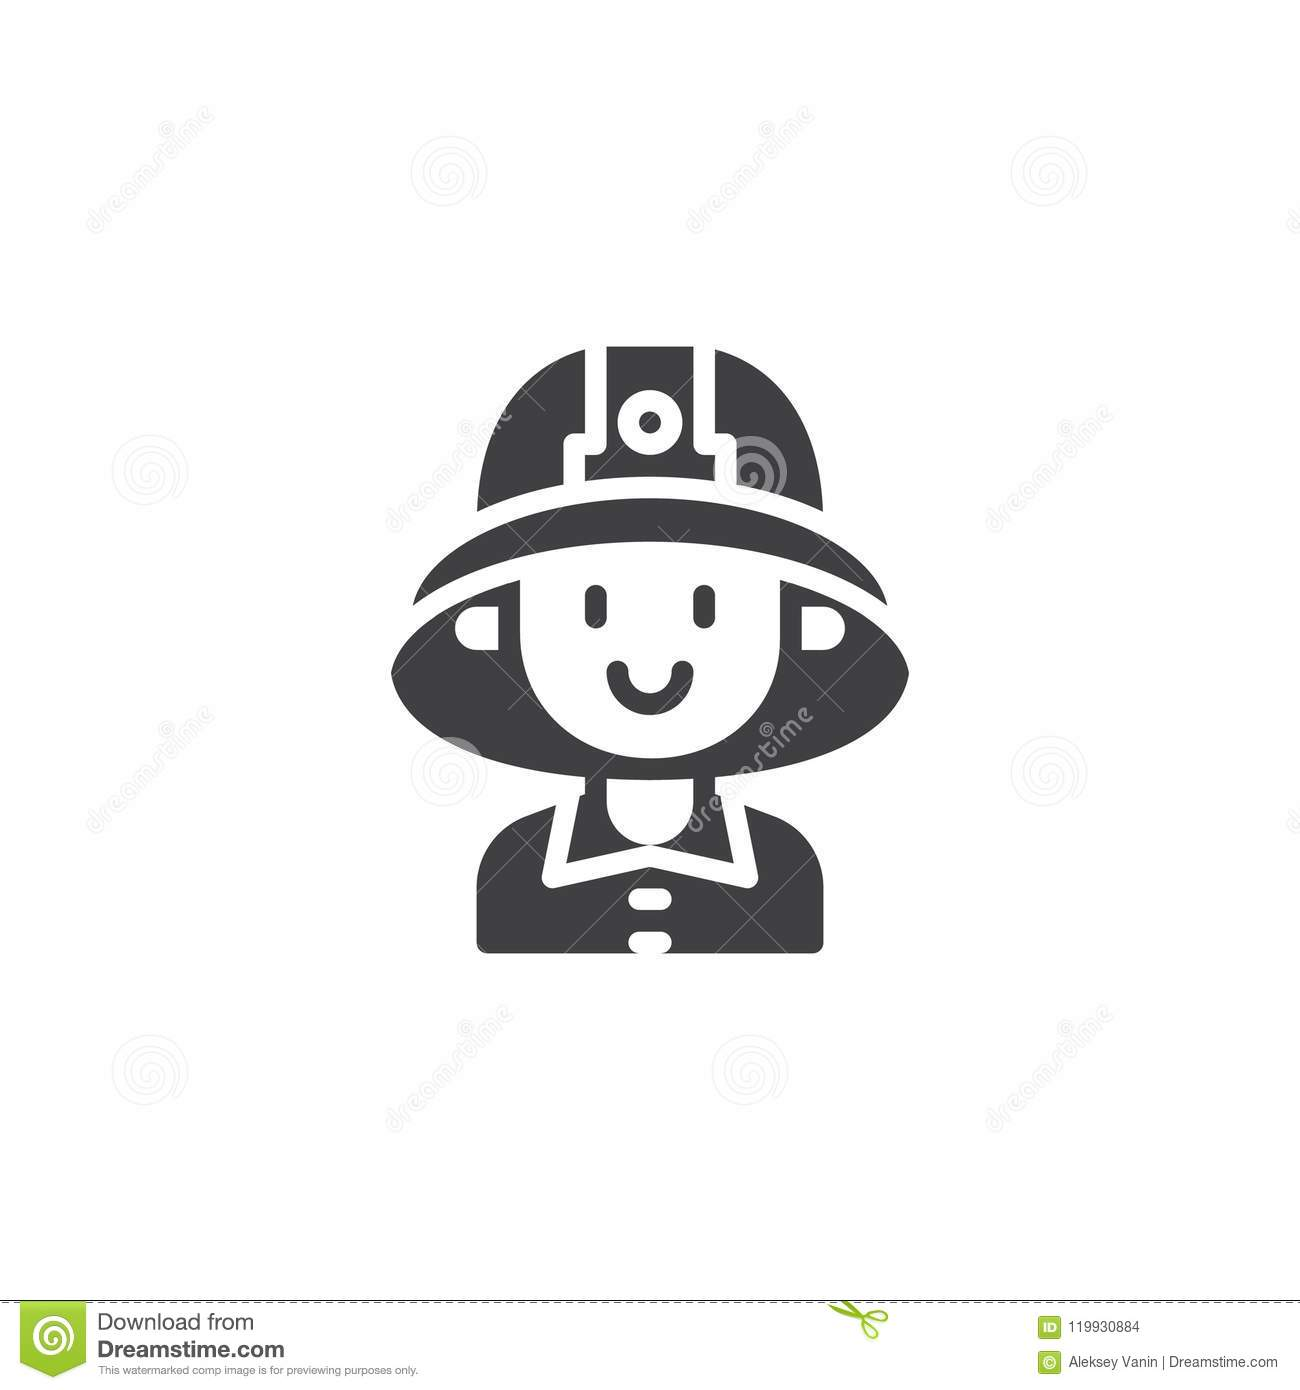 Firefighter Character Vector Icon Stock Vector - Illustration of ... e1a4bb4de12f